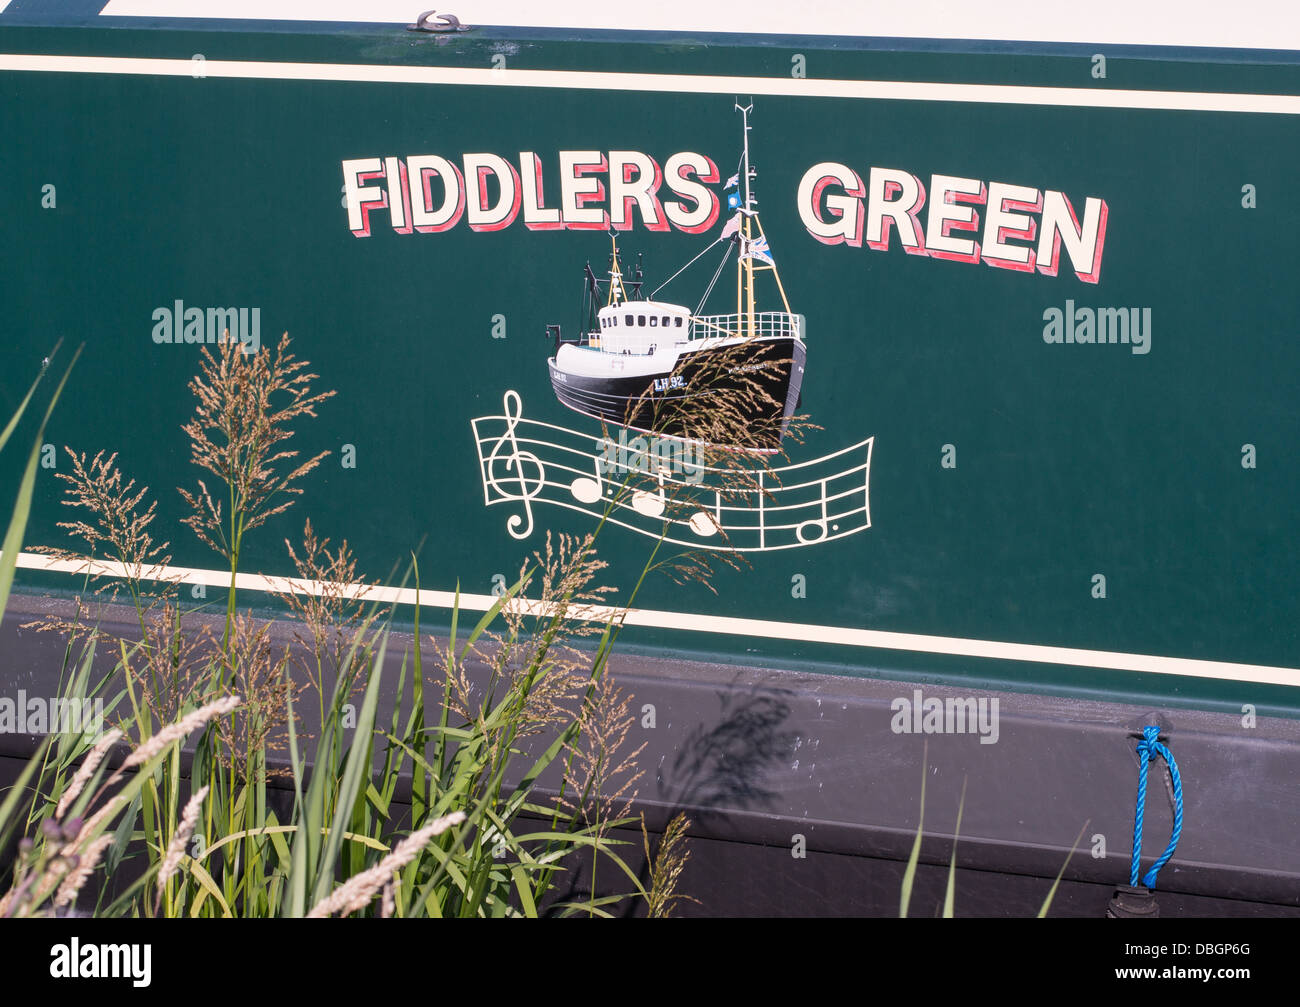 fiddlers-green-name-painted-on-the-side-of-a-canal-narrow-boat-england-DBGP6G.jpg